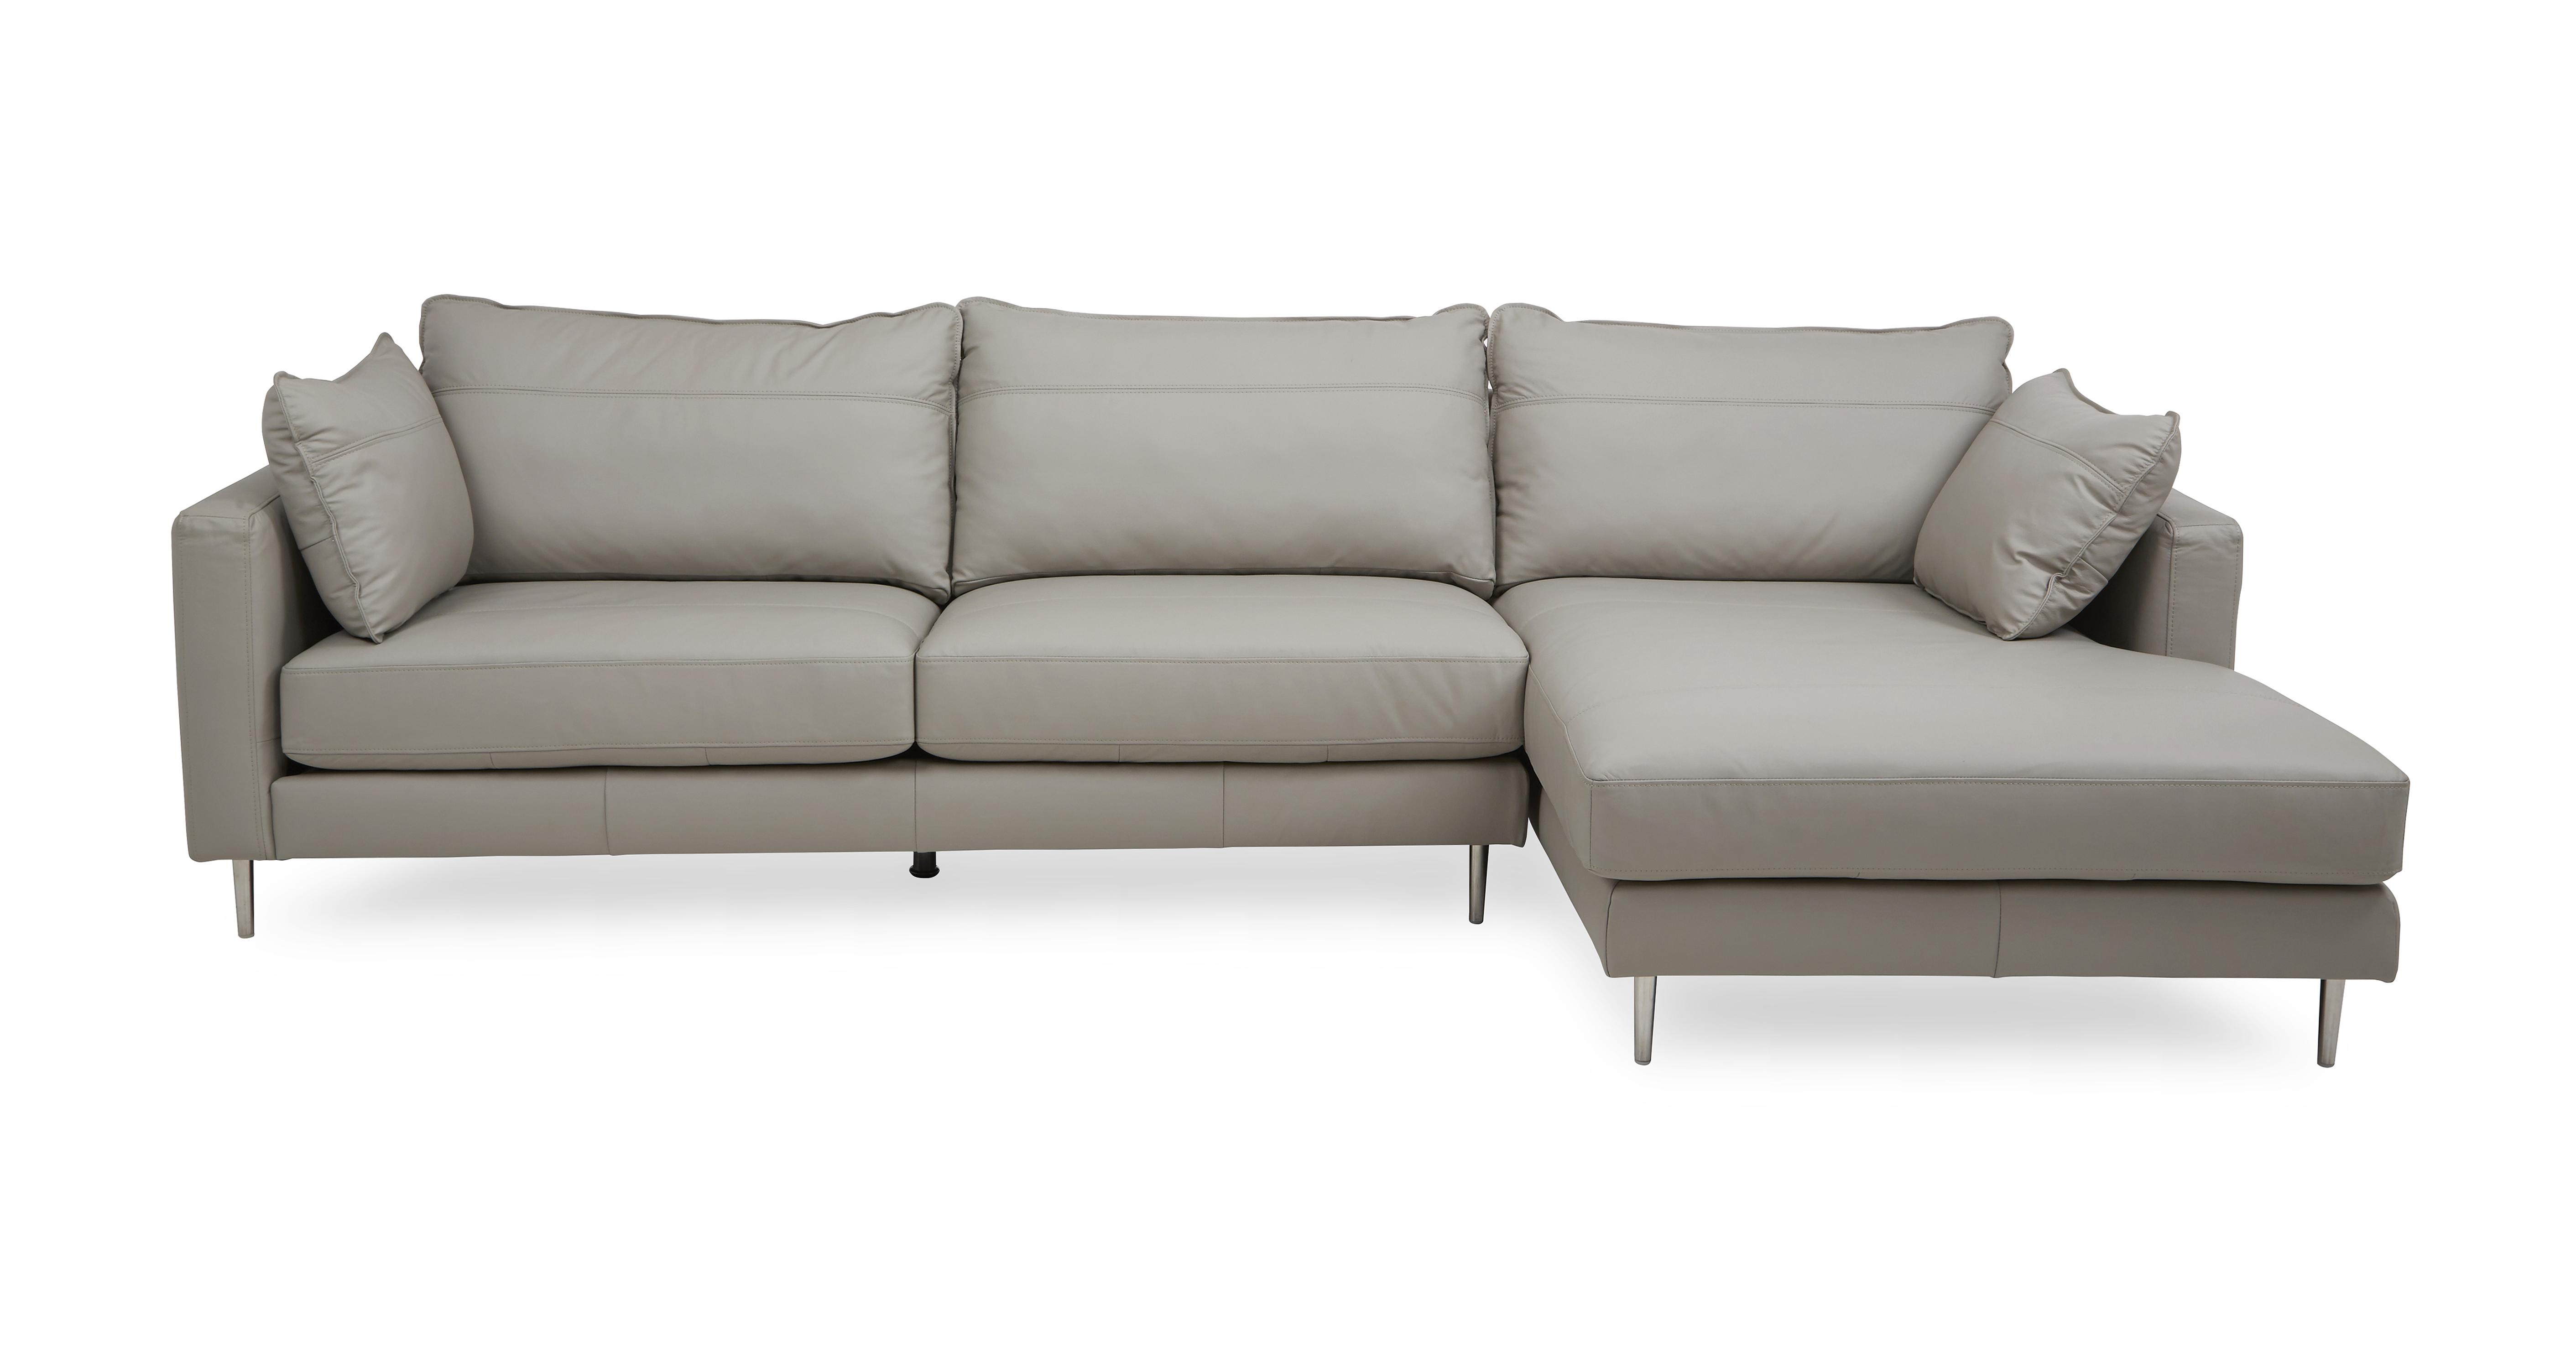 Bank Met Chaise Longue Links Hoekbank Chaise Longue Cool Montl Hoekbank Multi Plus